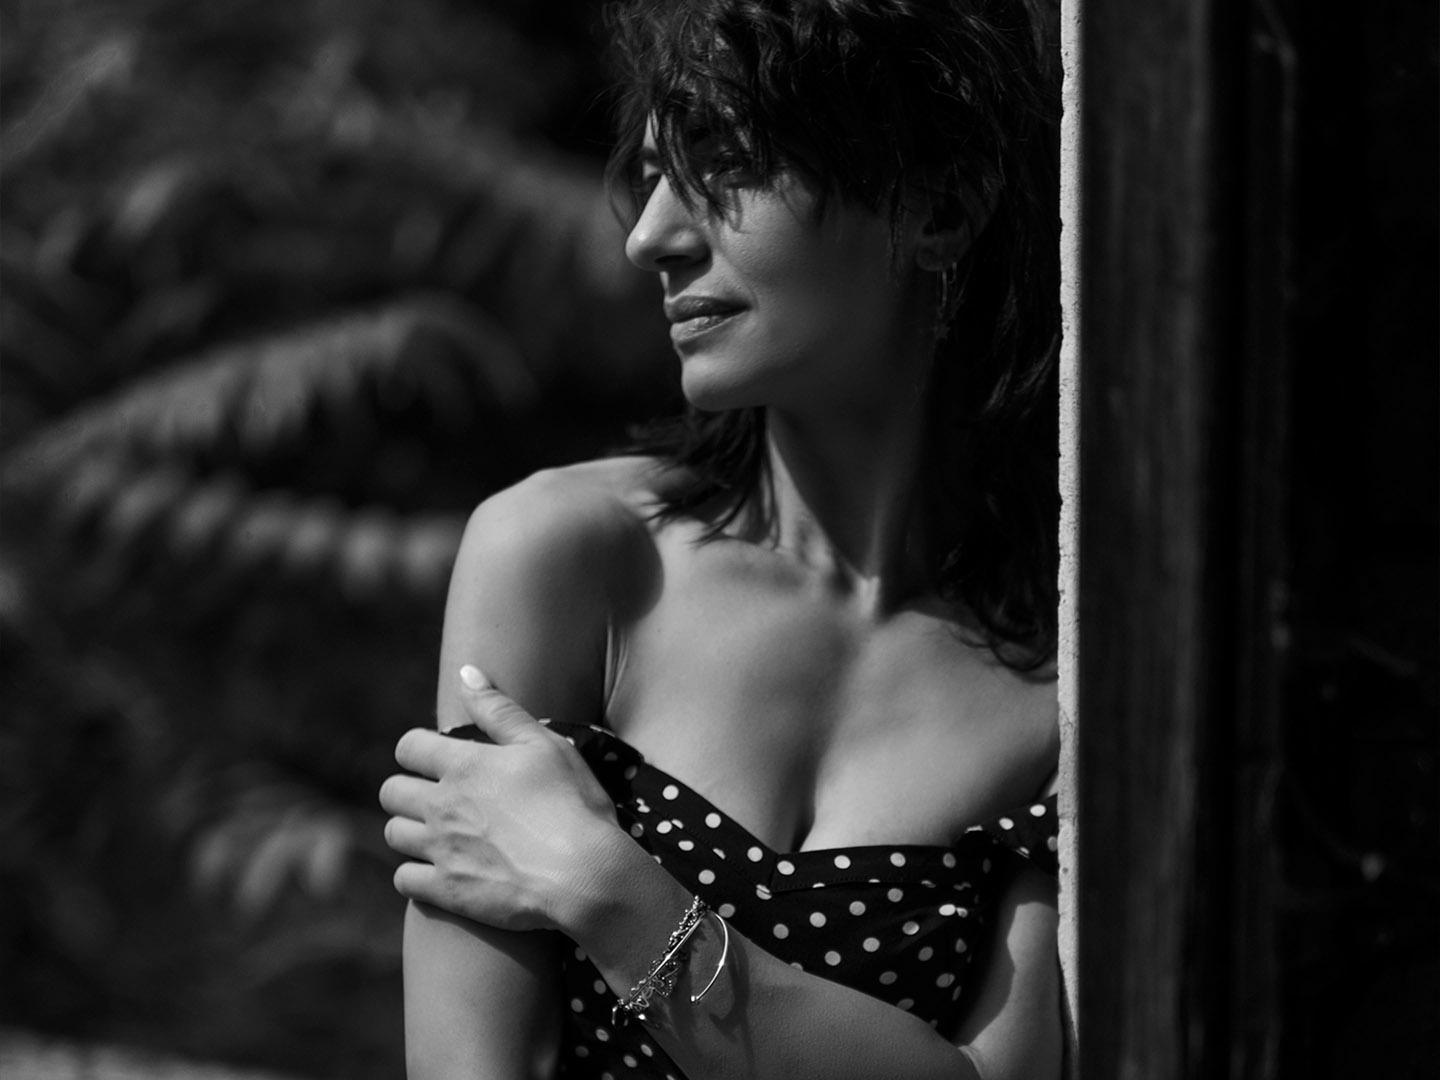 Categorie: Fashion, Glamour, Portrait; Photographer: FEDERICO PASQUALINI; Model: RAMONA MILANI; Location: Verona, VR, Italia